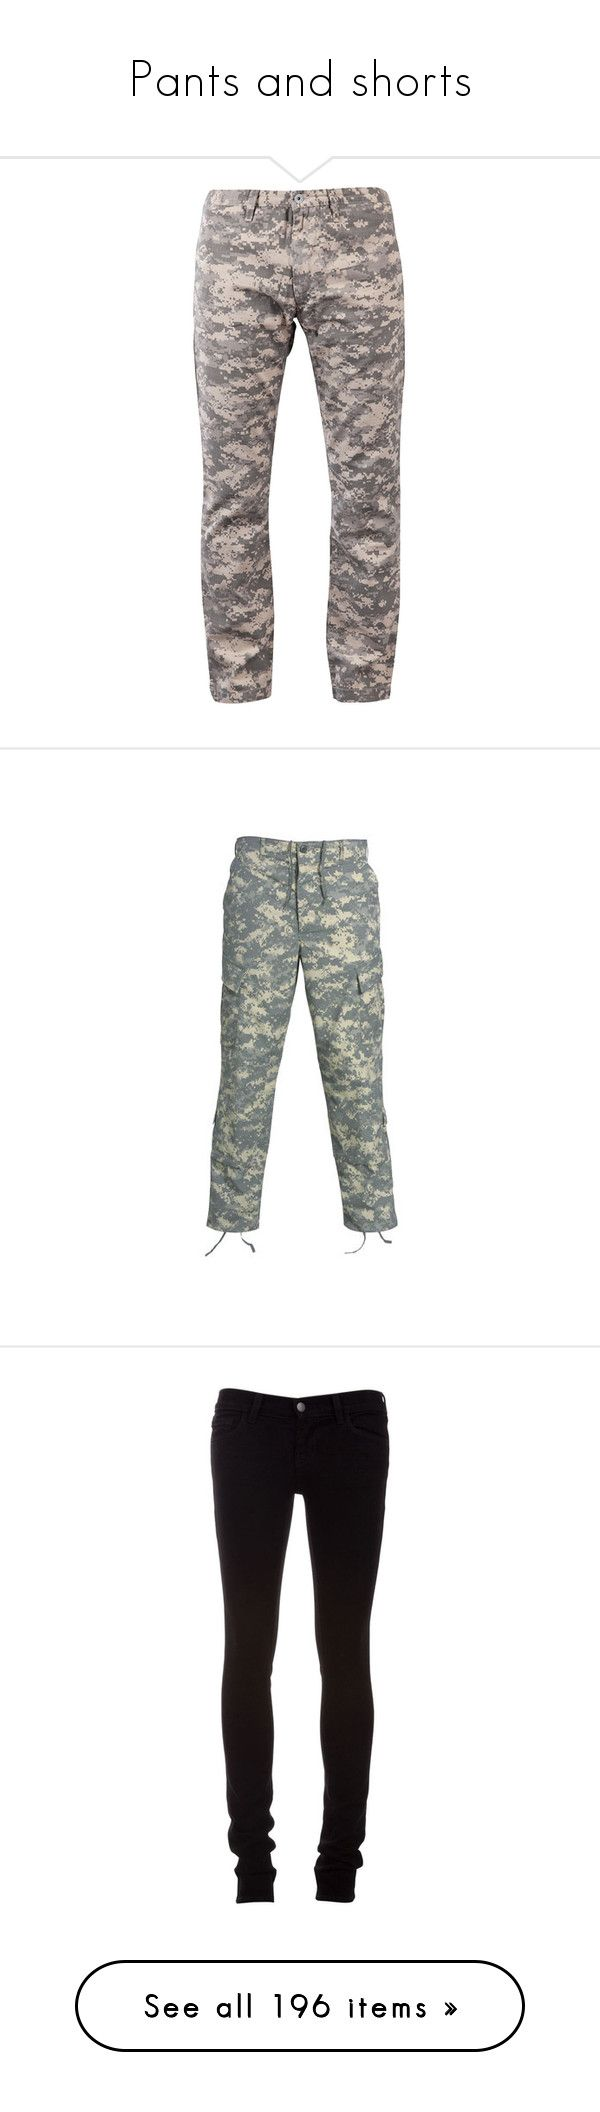 """Pants and shorts"" by flamingfirewolf ❤ liked on Polyvore featuring men's fashion, men's clothing, men's pants, men's casual pants, mens slim camo pants, mens camo pants, mens slim pants, mens leopard print pants, mens camouflage pants and pants"